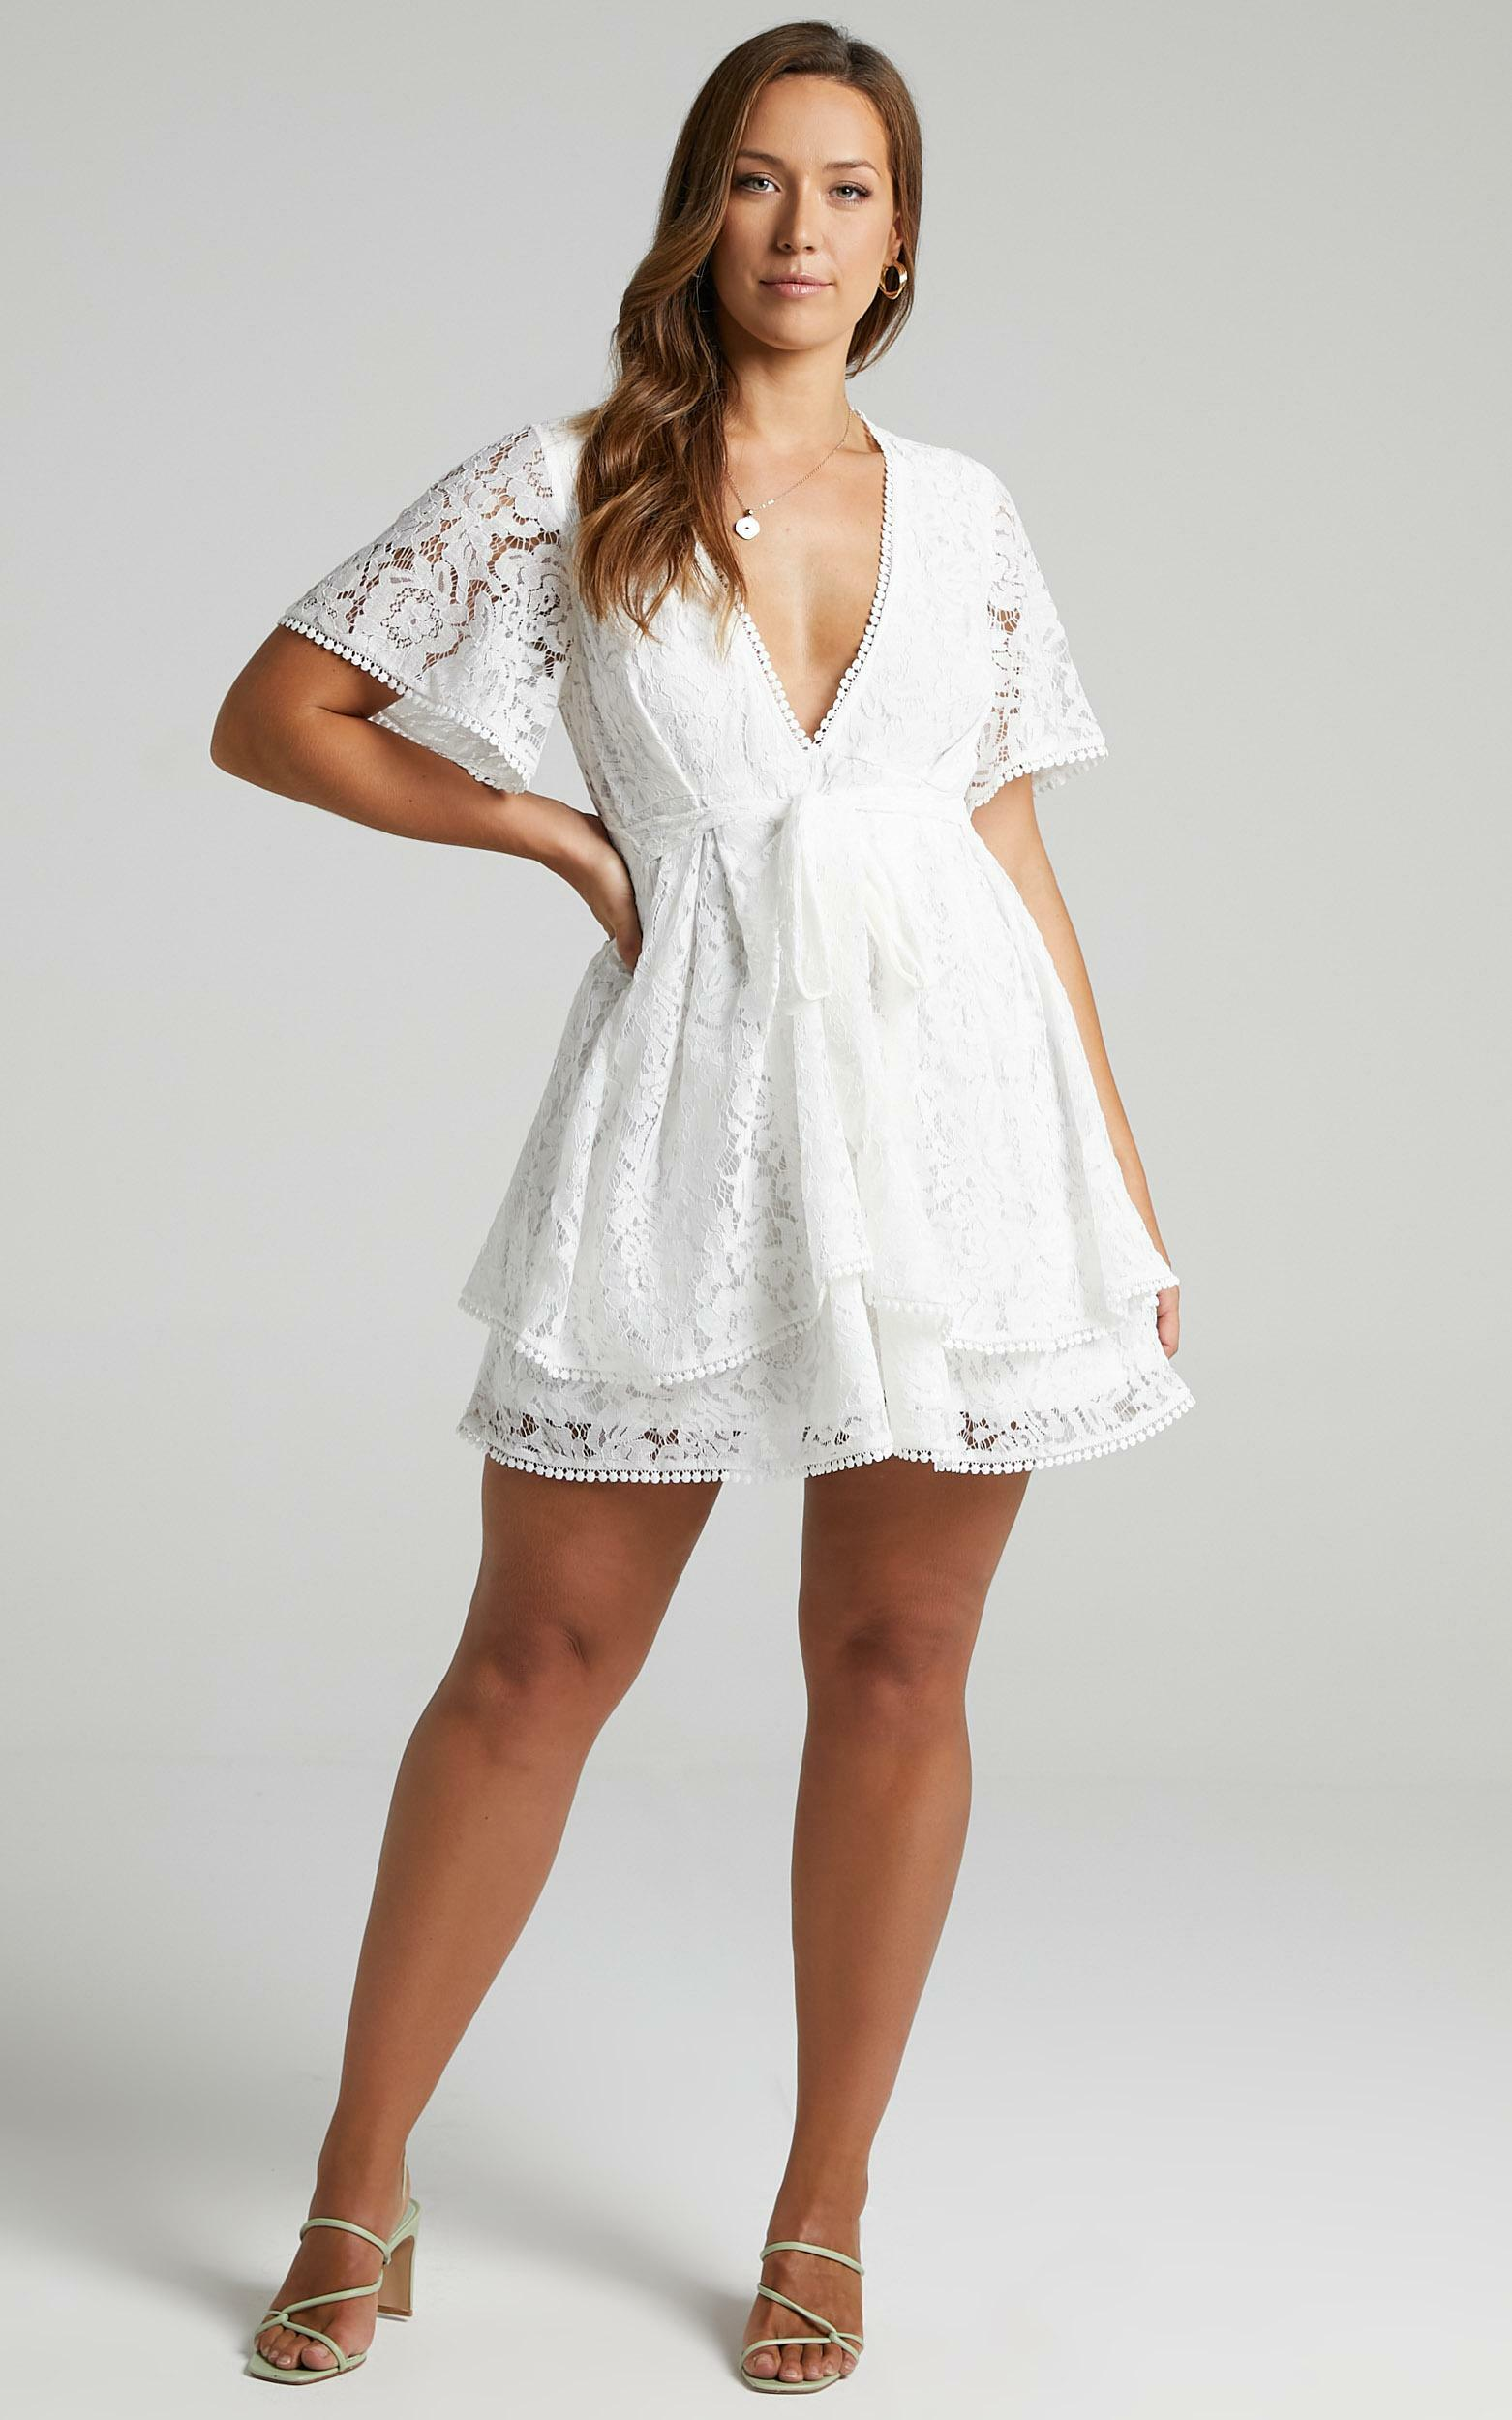 Do You Miss Me Dress in White Lace - 20, WHT3, hi-res image number null